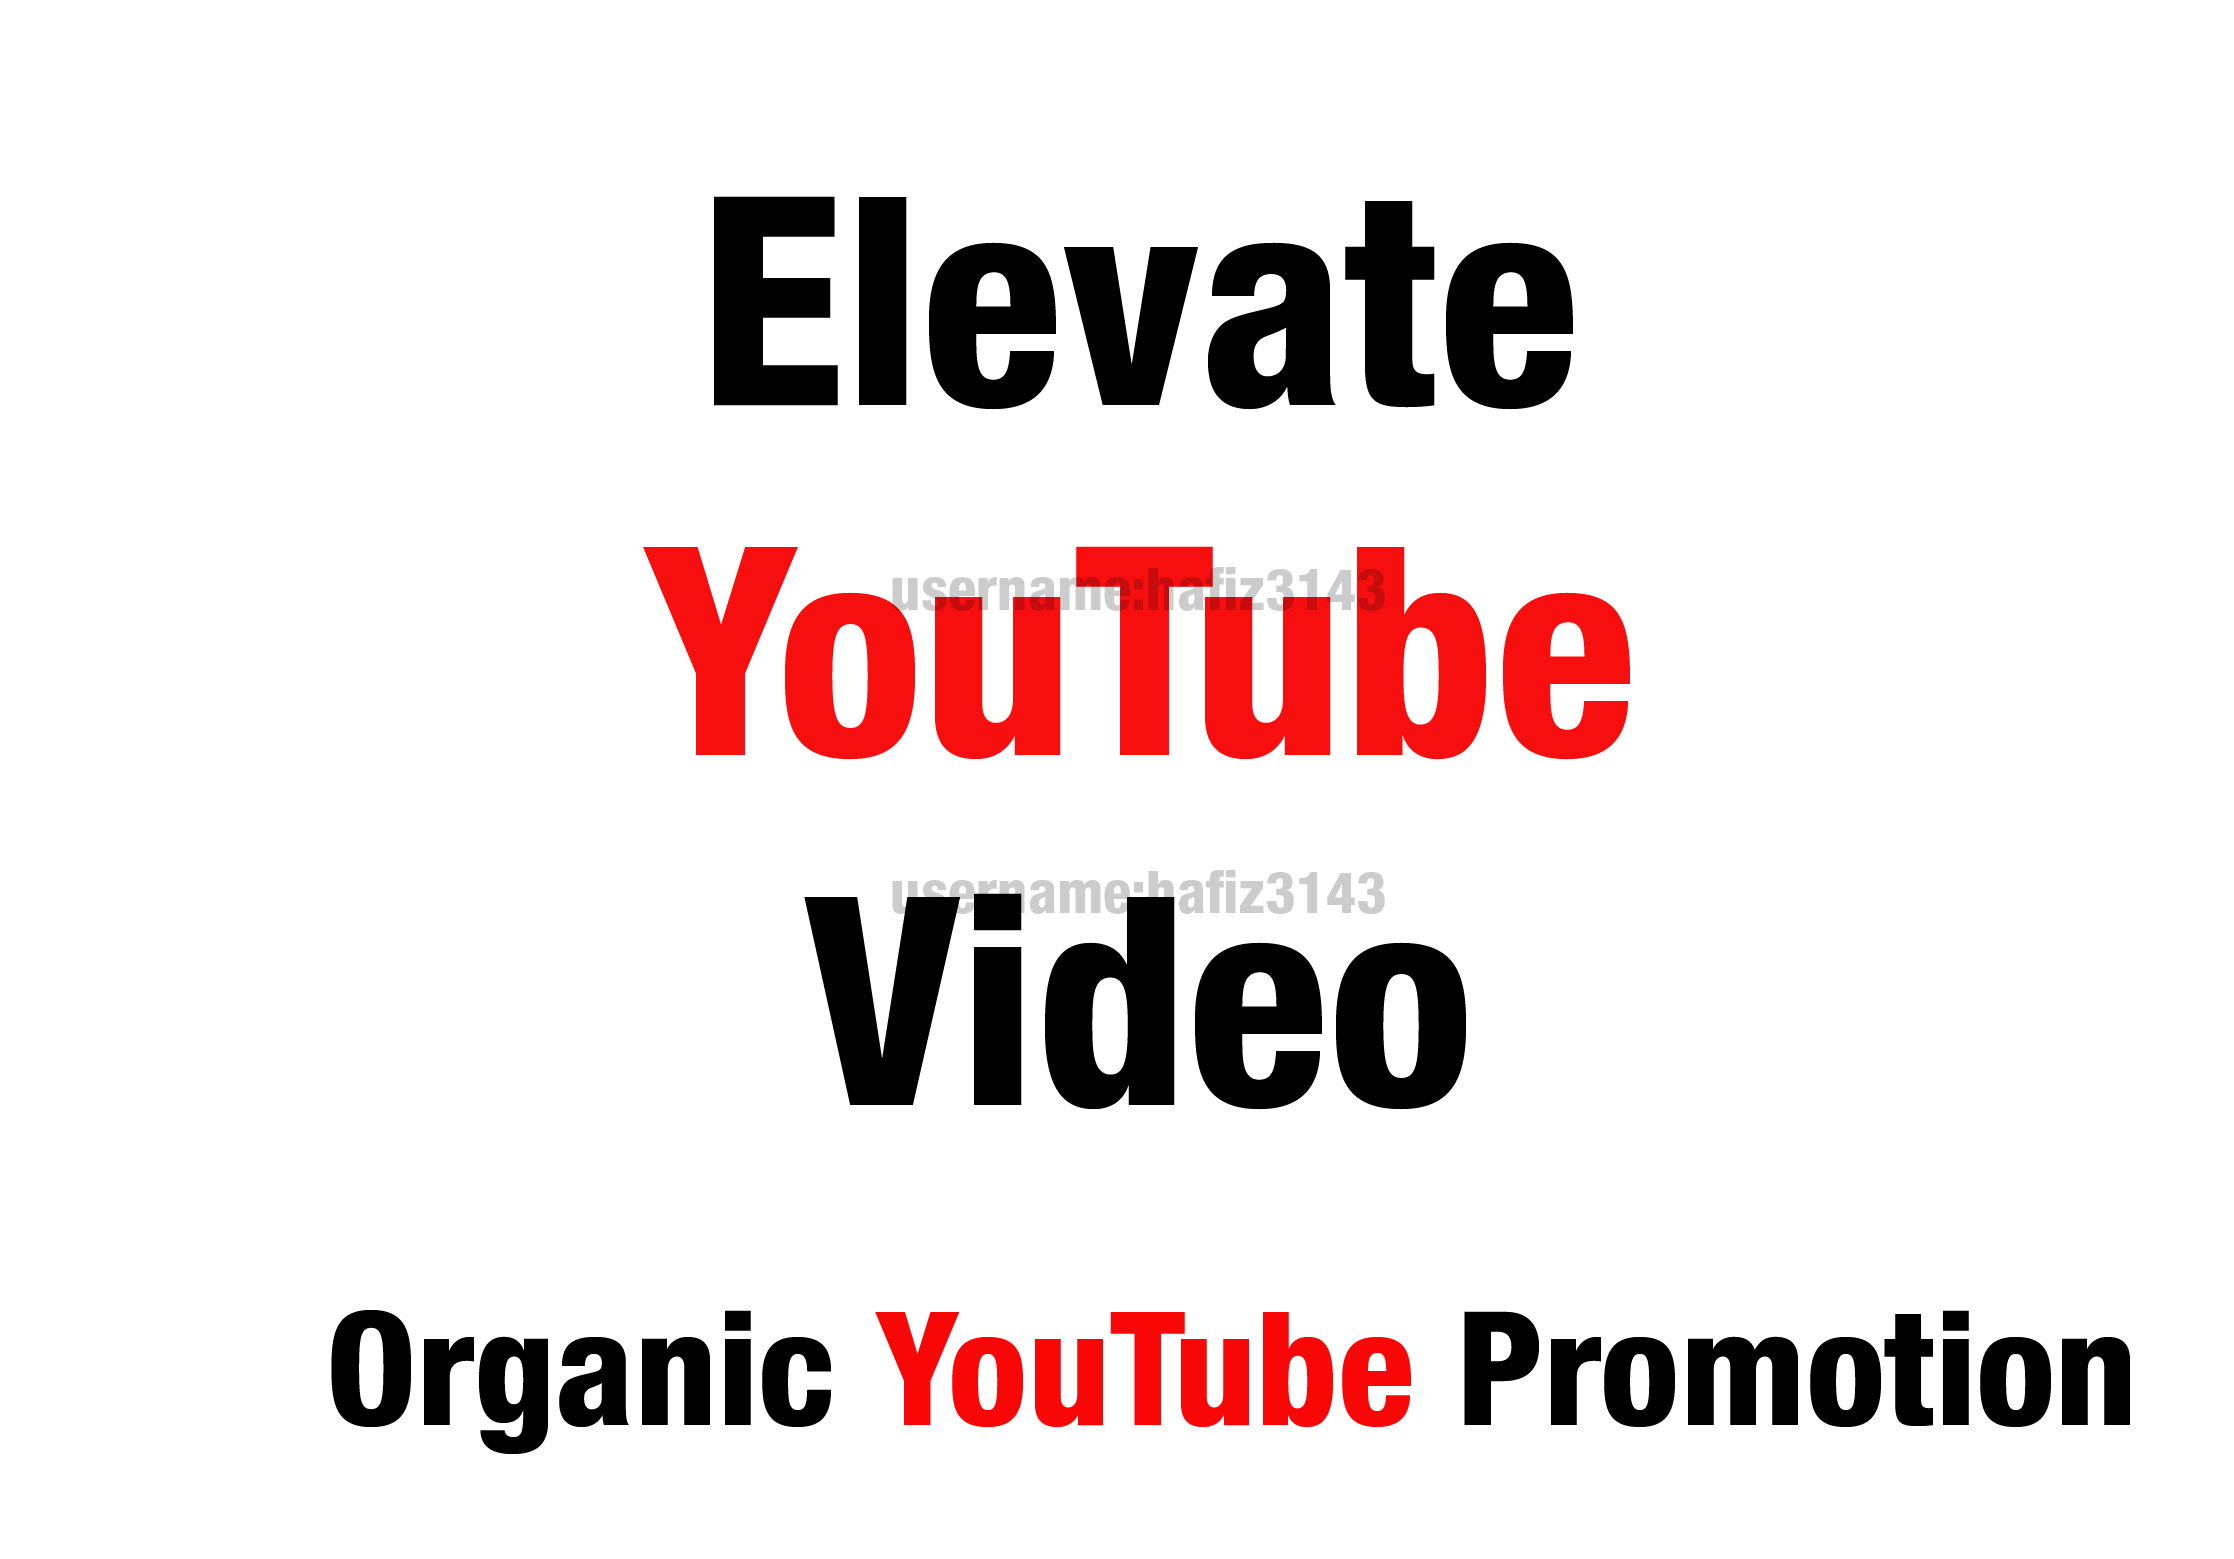 I will do organic YouTube video promotion Viral YouTube Video